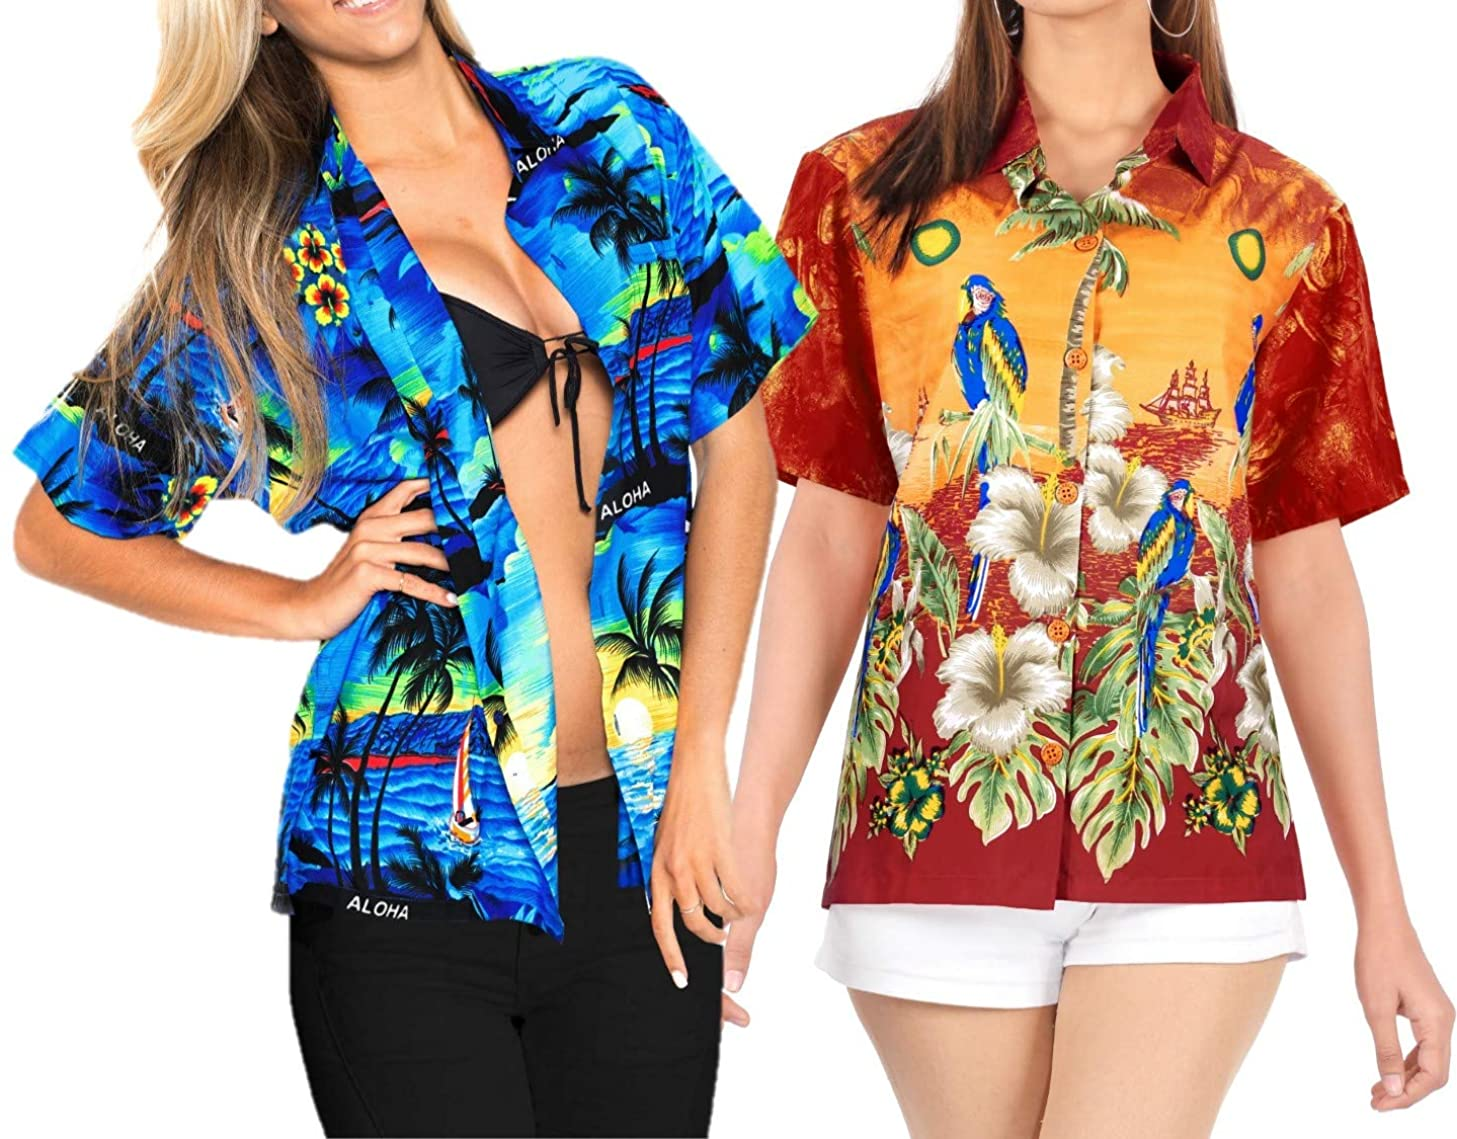 LA LEELA Women's Plus Size Hawaii Aloha Dress Shirt for Casual Wear M Work from Home Clothes Women Blouse Pack of 2